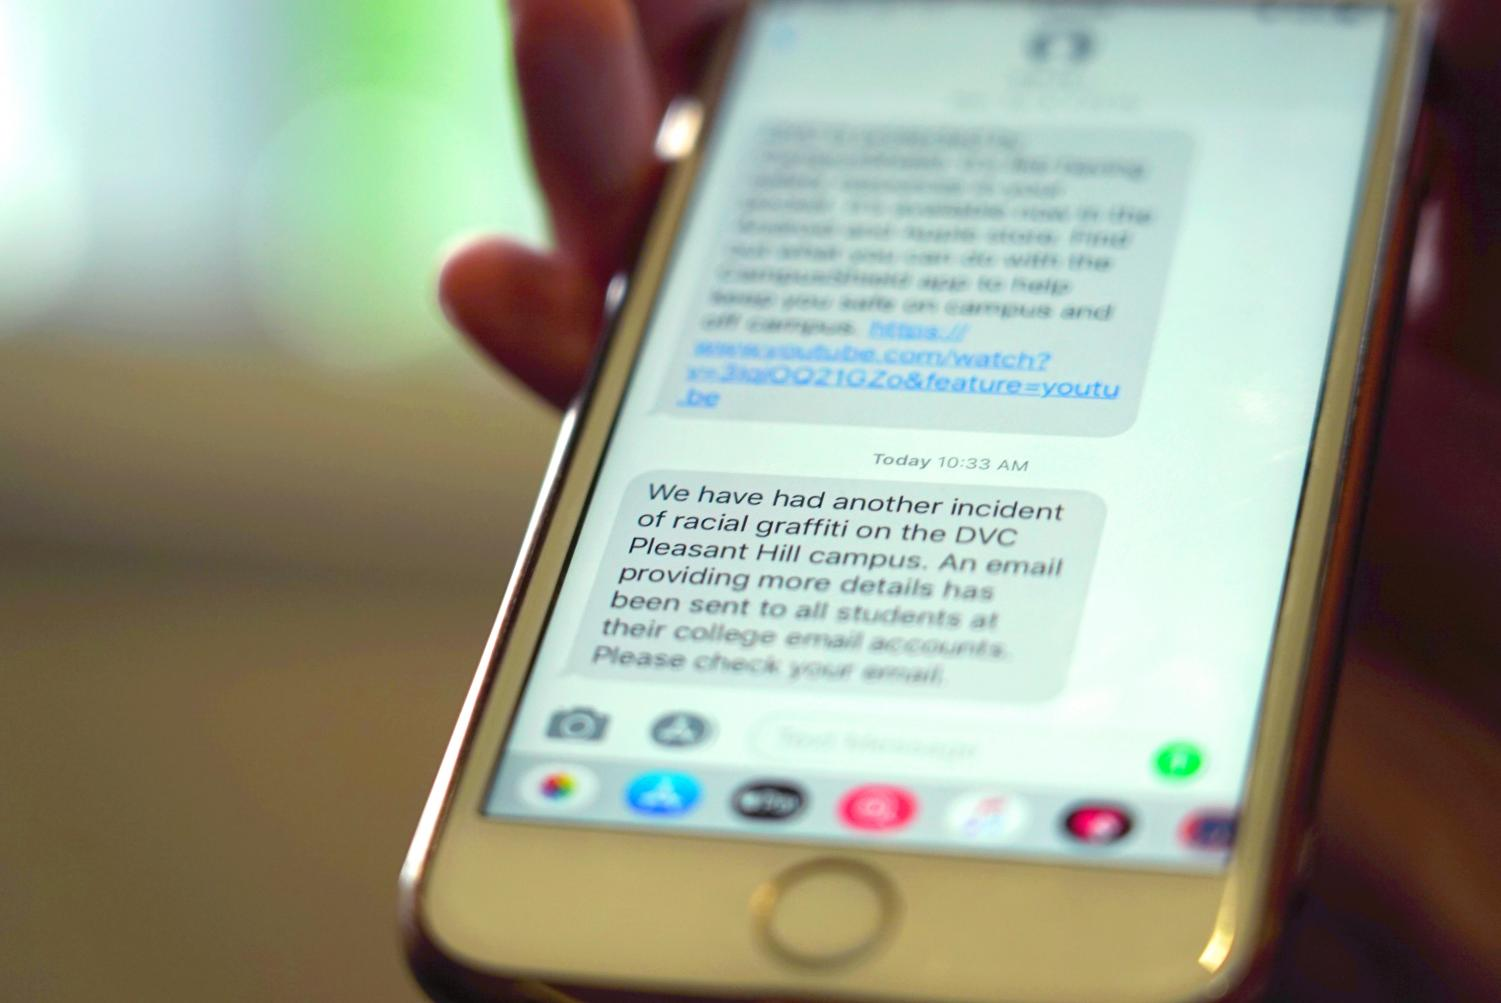 A mass text was sent out to DVC students today at 10:33 a.m., however some students report that the receive no notification. (Ethan Anderson/The Inquirer).